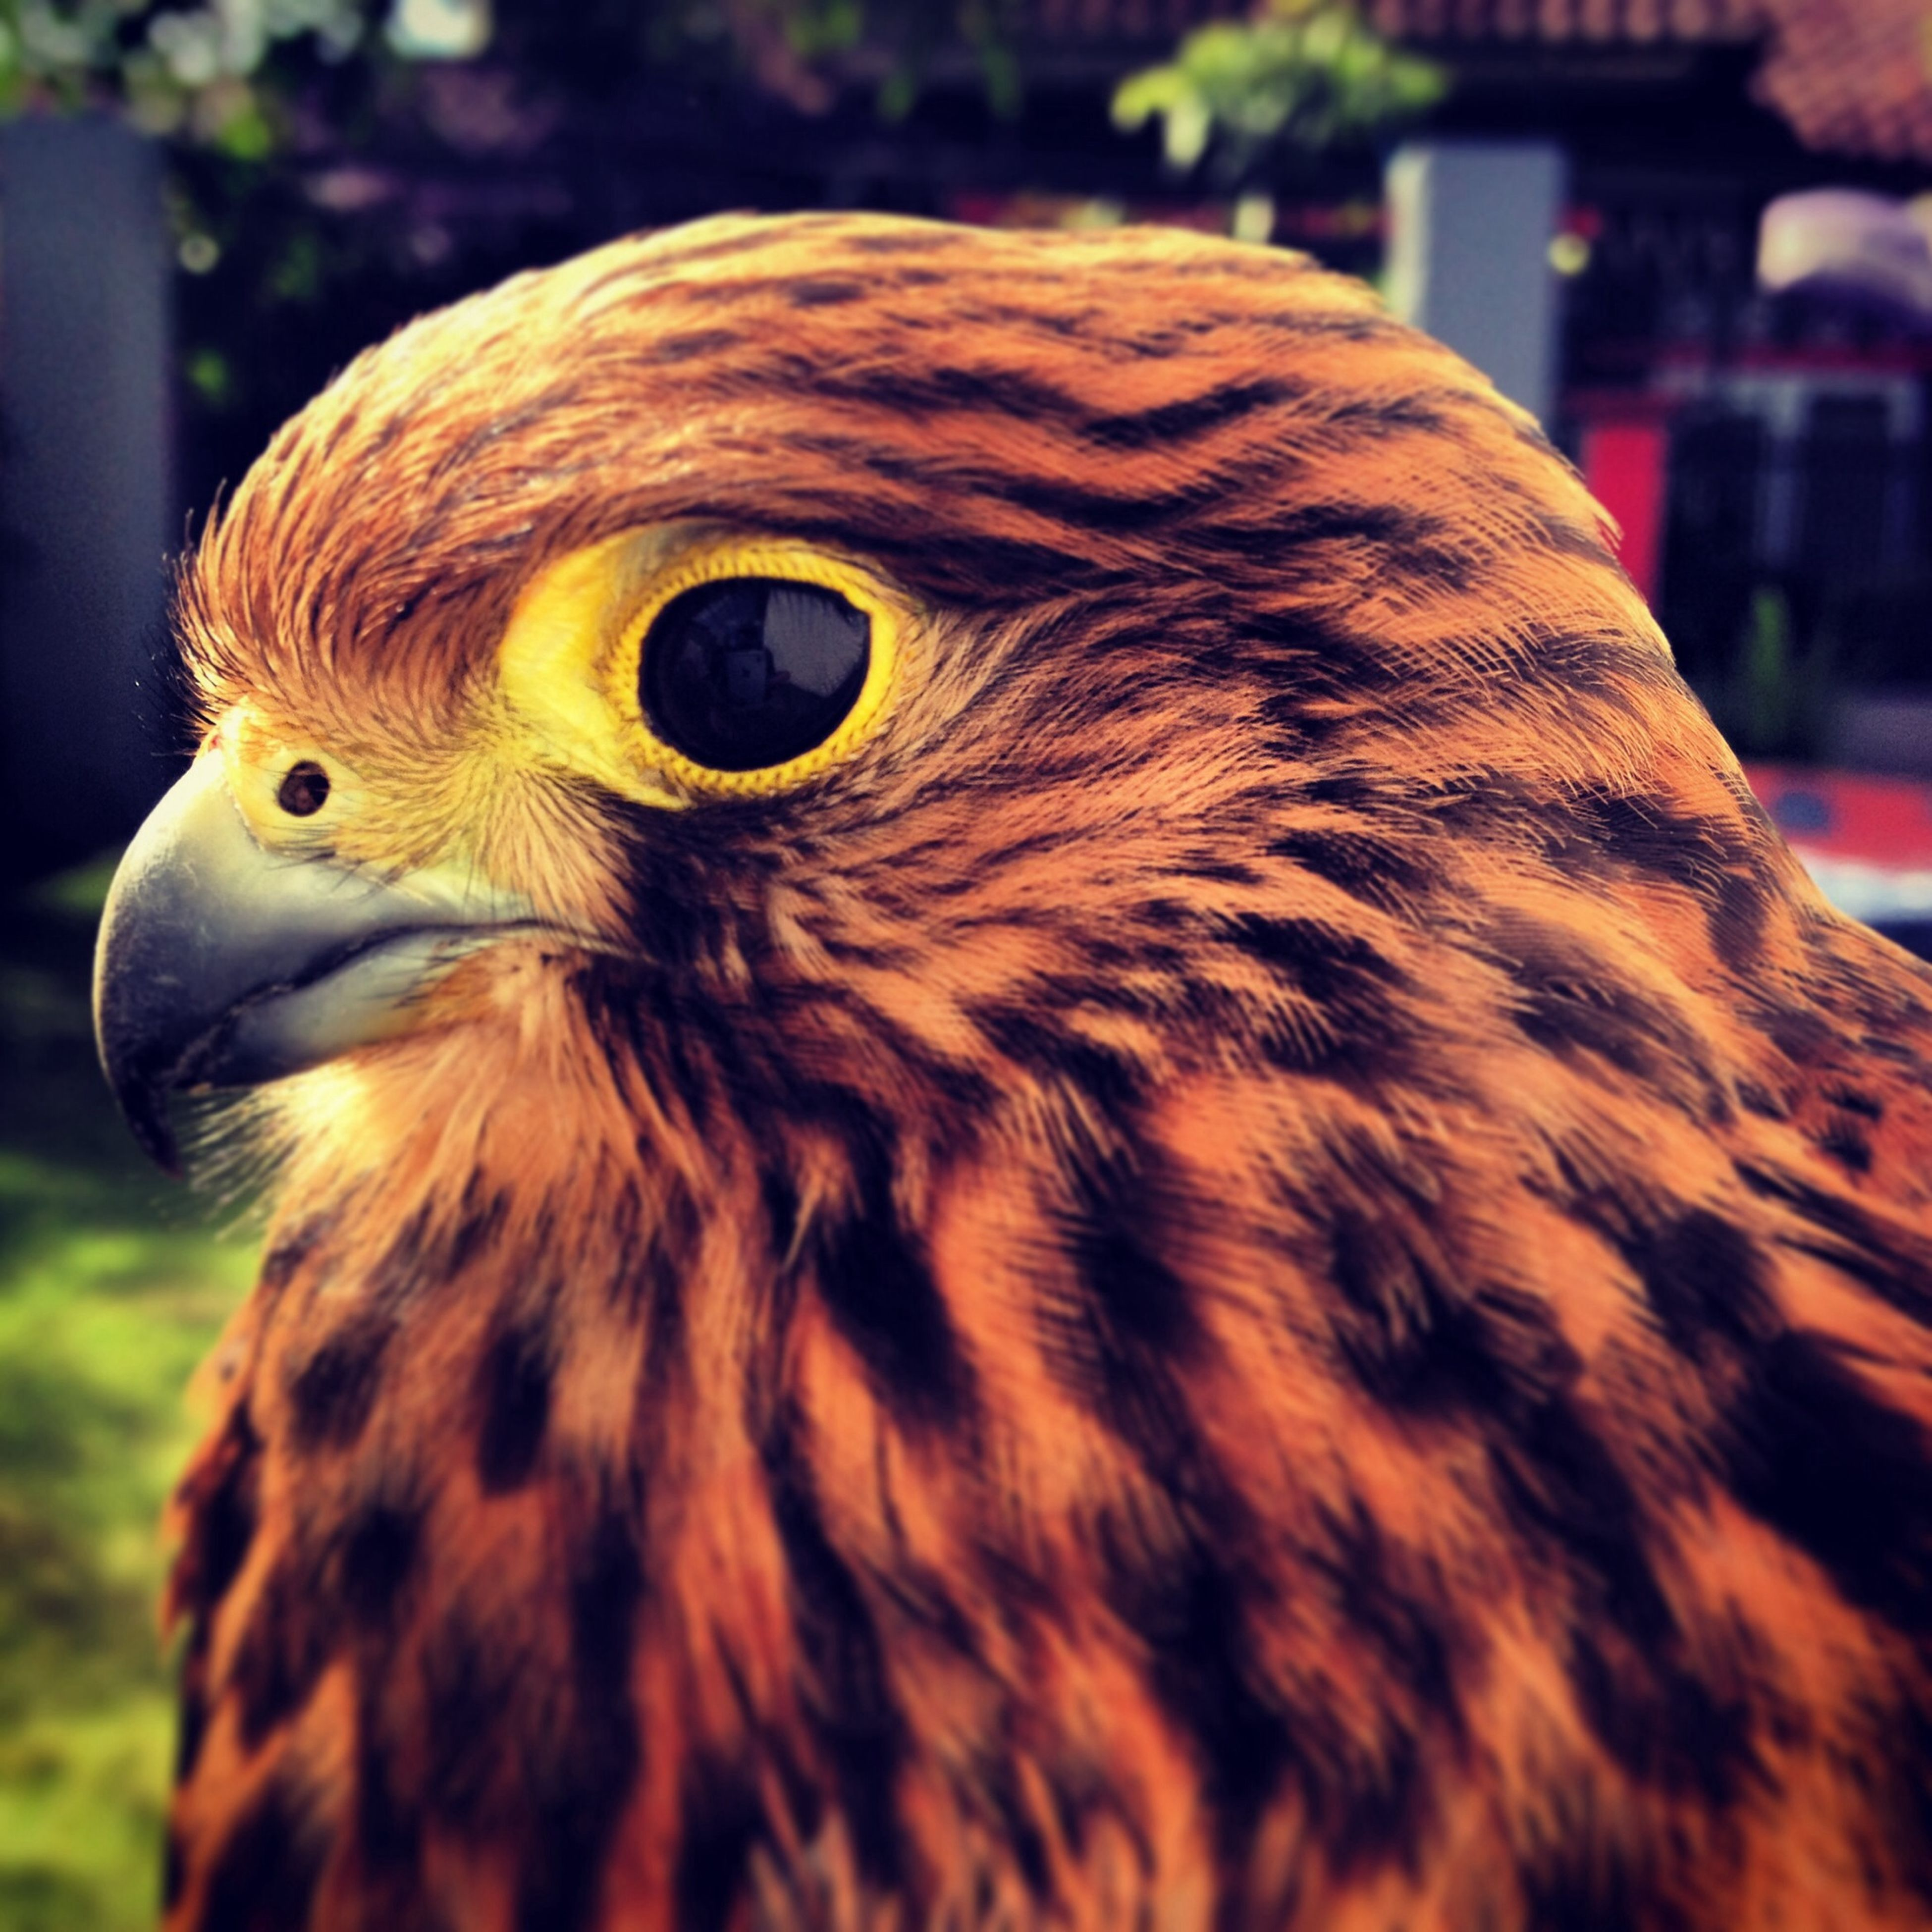 animal themes, one animal, bird, focus on foreground, close-up, animals in the wild, animal head, wildlife, beak, bird of prey, portrait, animal body part, looking at camera, owl, outdoors, front view, day, animal eye, nature